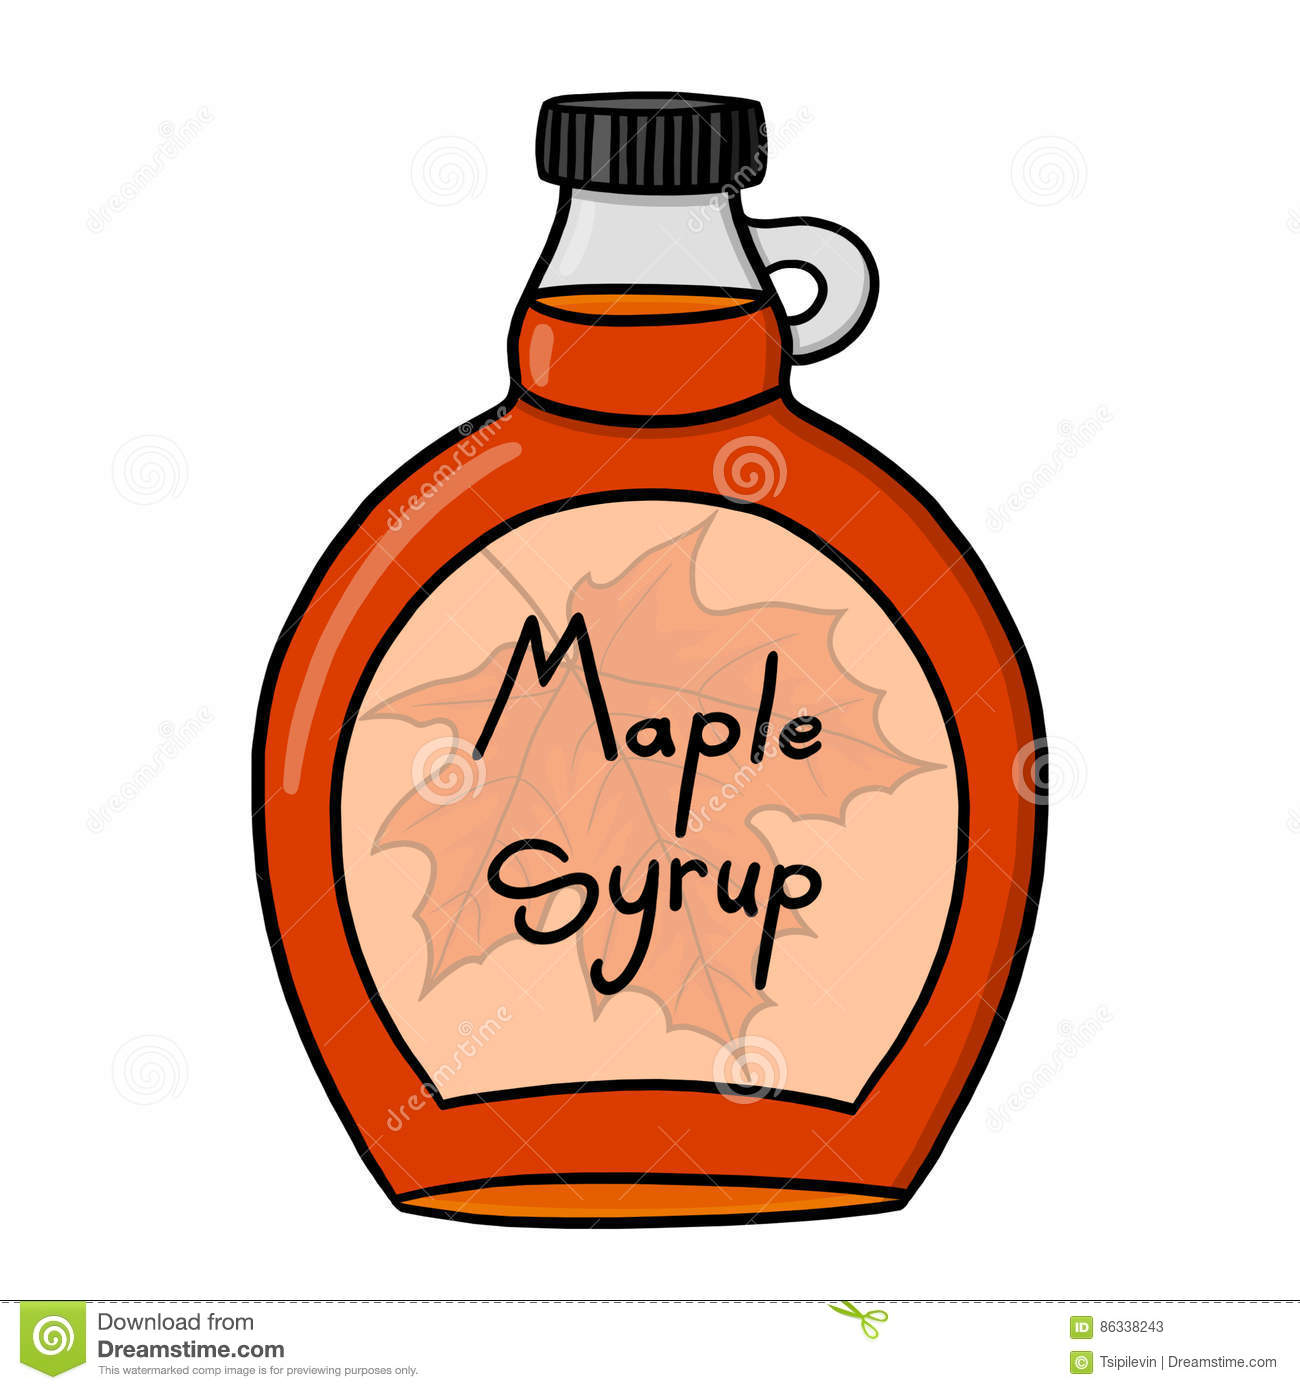 Maple syrup clipart 2 » Clipart Station.